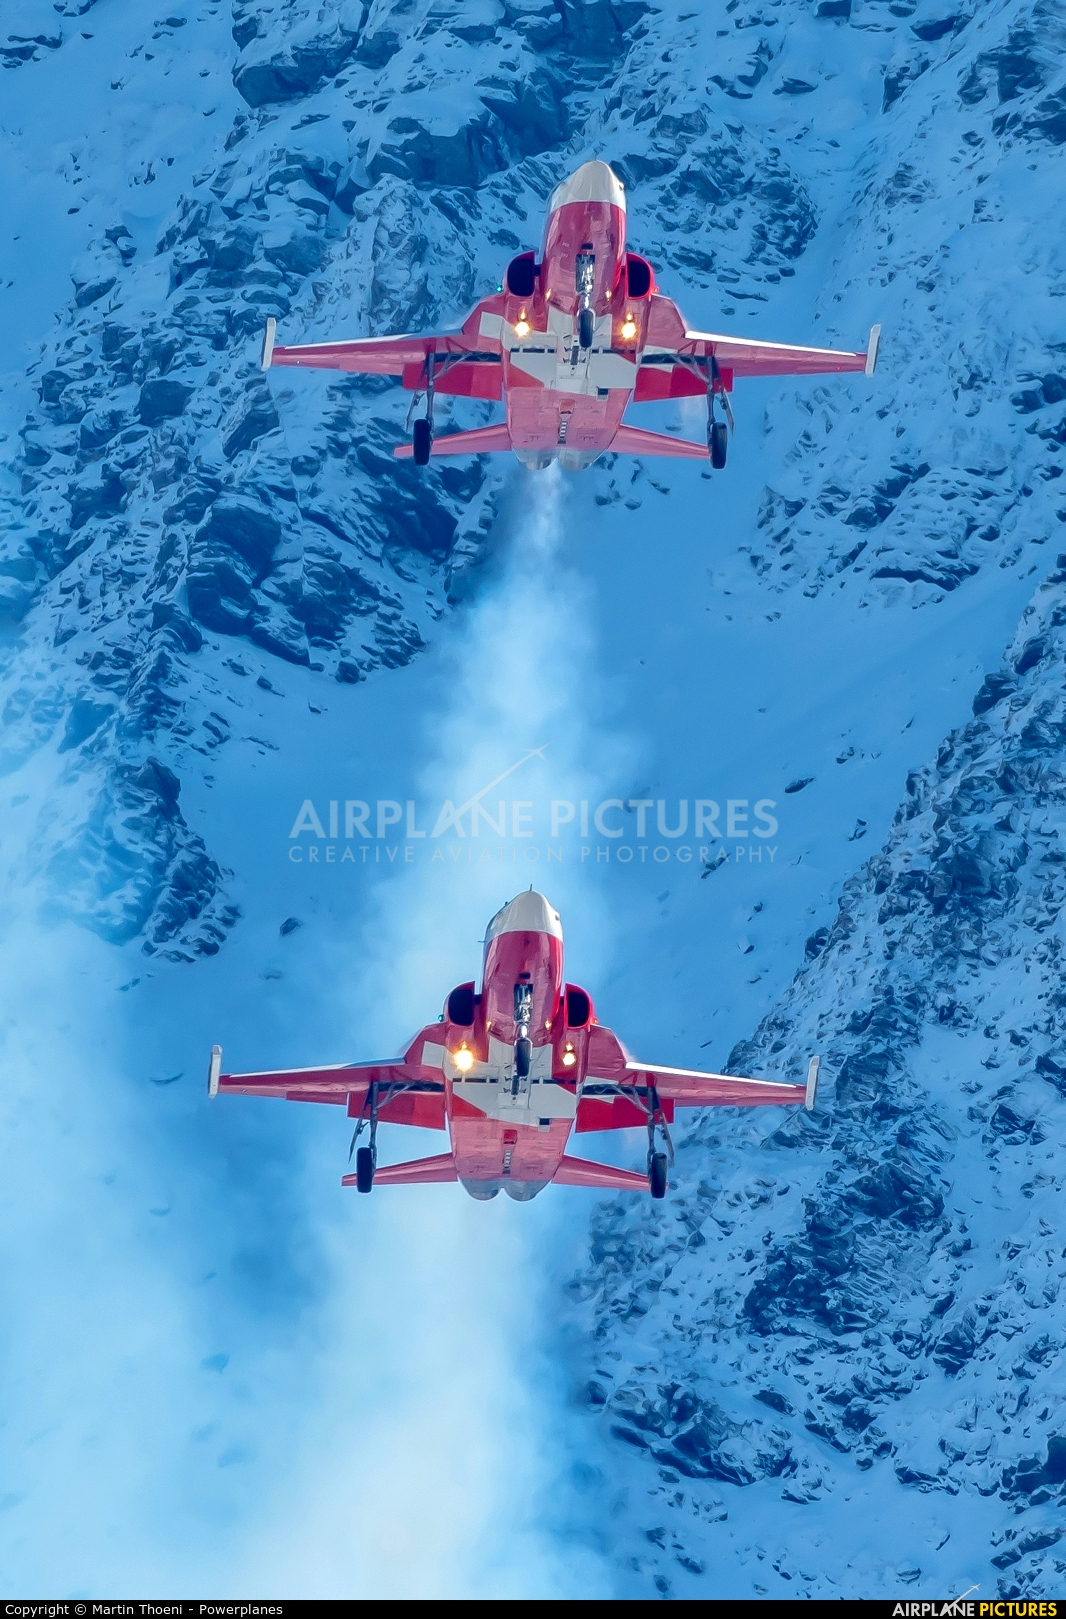 Switzerland - Air Force: Patrouille Suisse J-3085 aircraft at Axalp - Ebenfluh Range